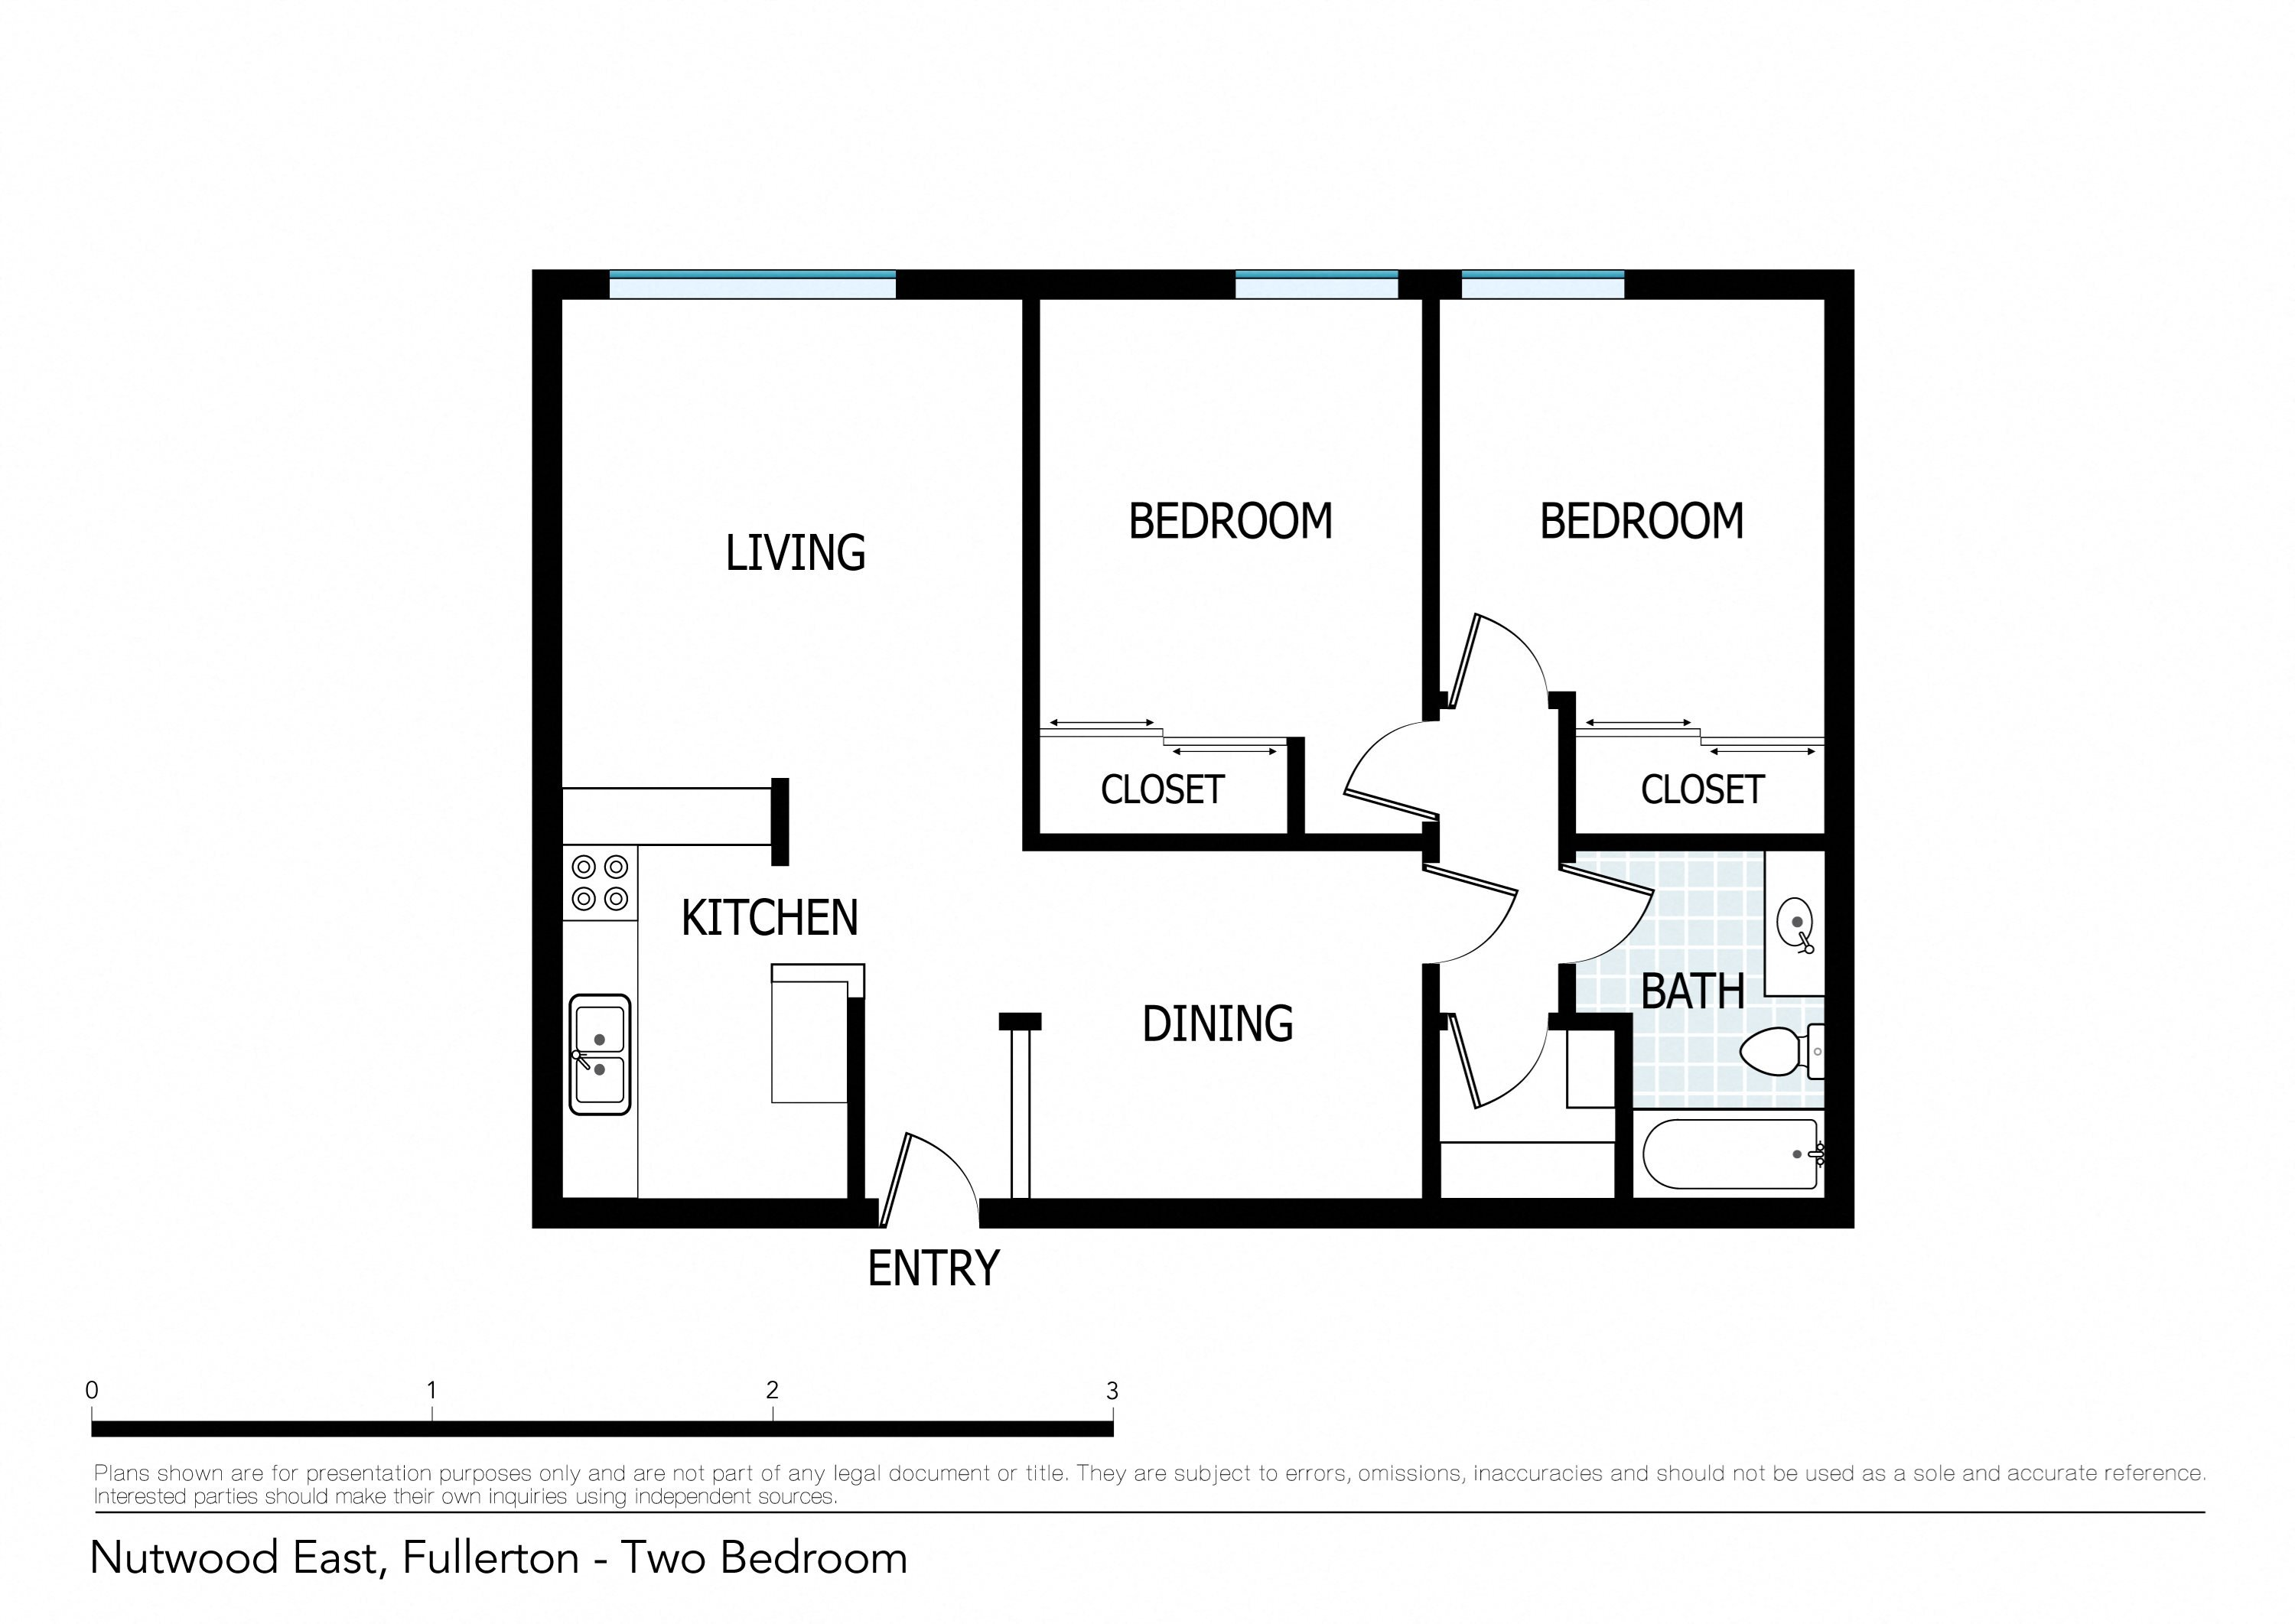 Floor Plans of Nutwood Apartments in Fullerton, CA